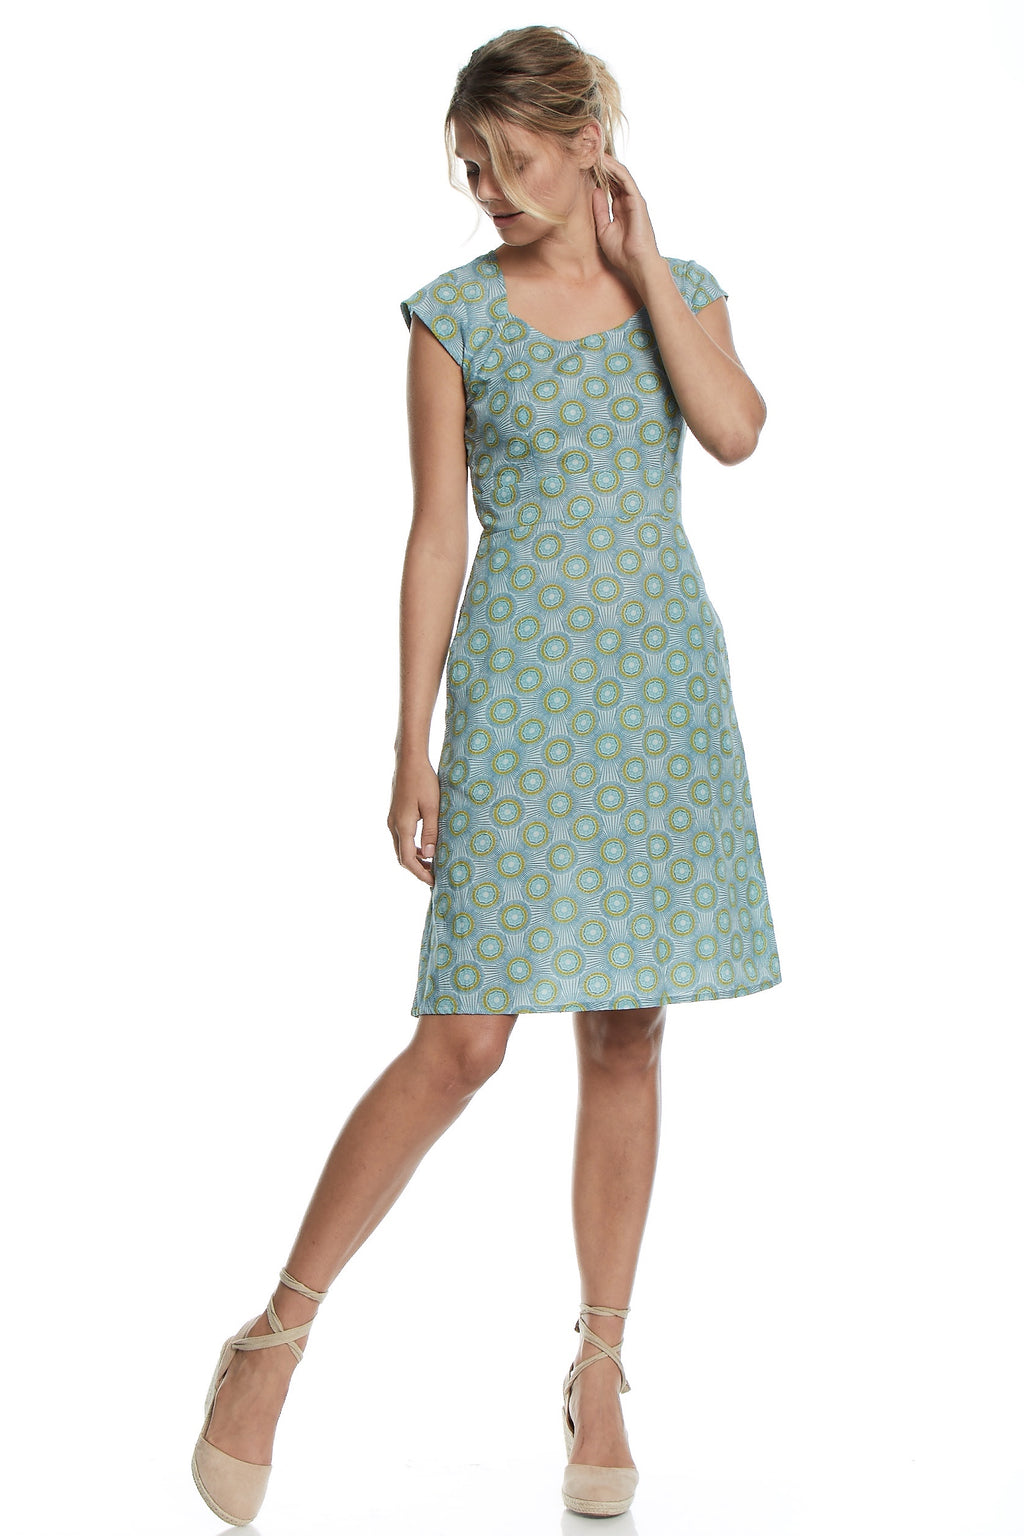 Mahashe Elsy Dress ~ Kiwi Mist